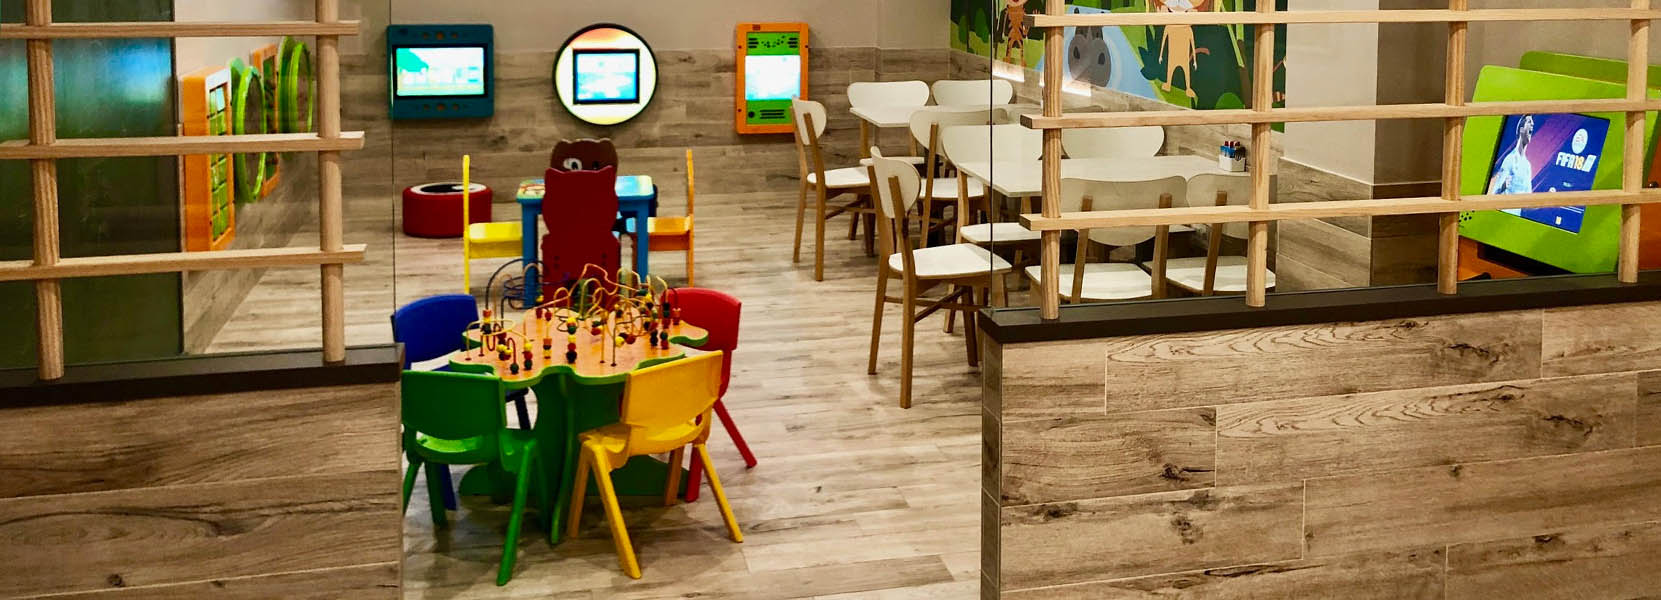 On this image you can see a kids' corner with kids' furniture